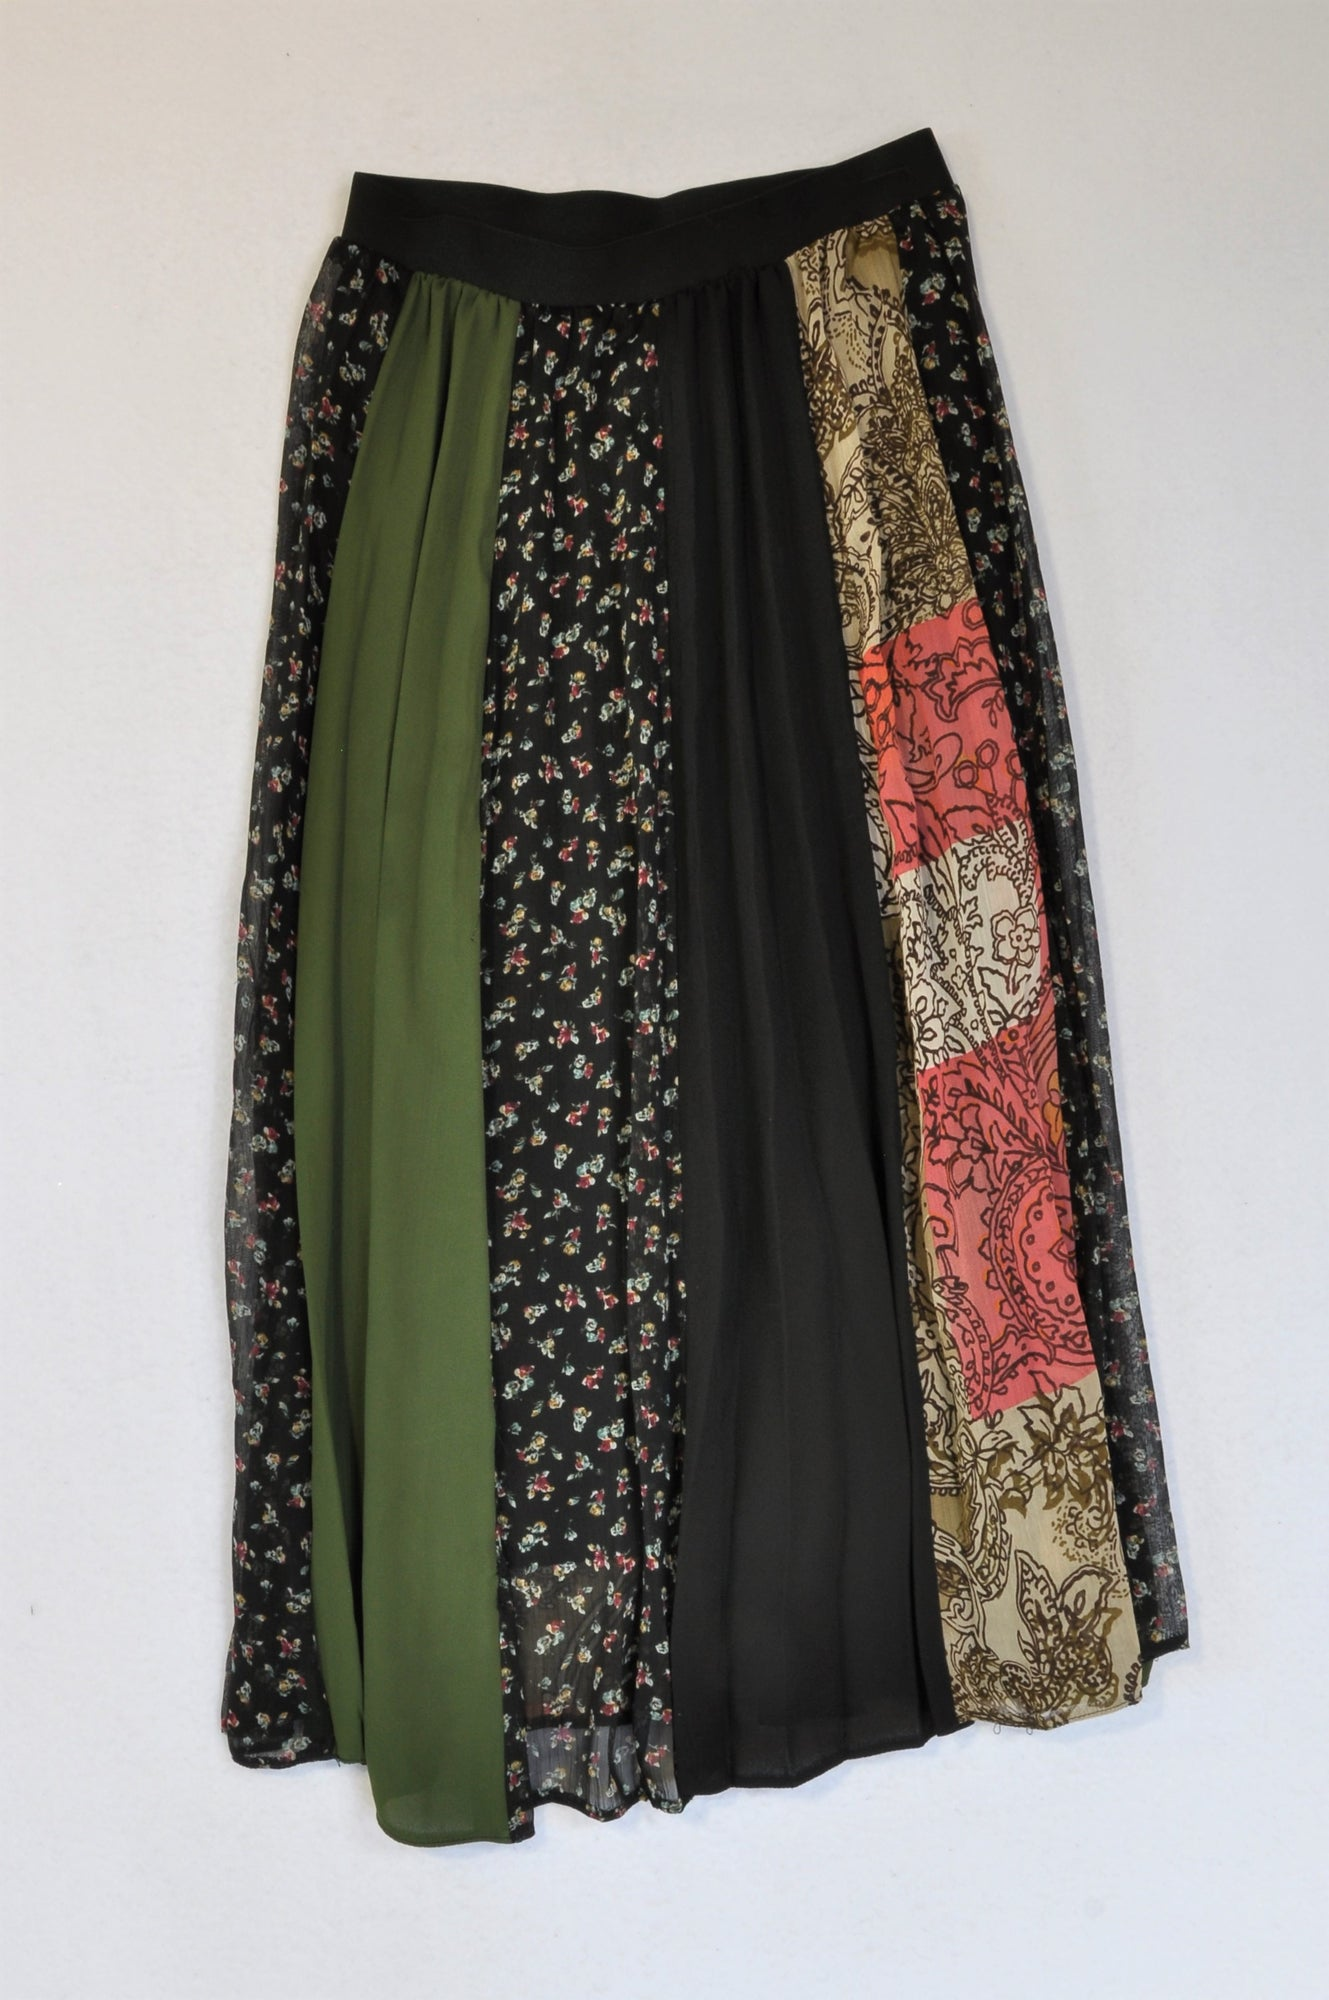 Superbalist Black Banded Olive Floral Panel  Skirt Women Size 6